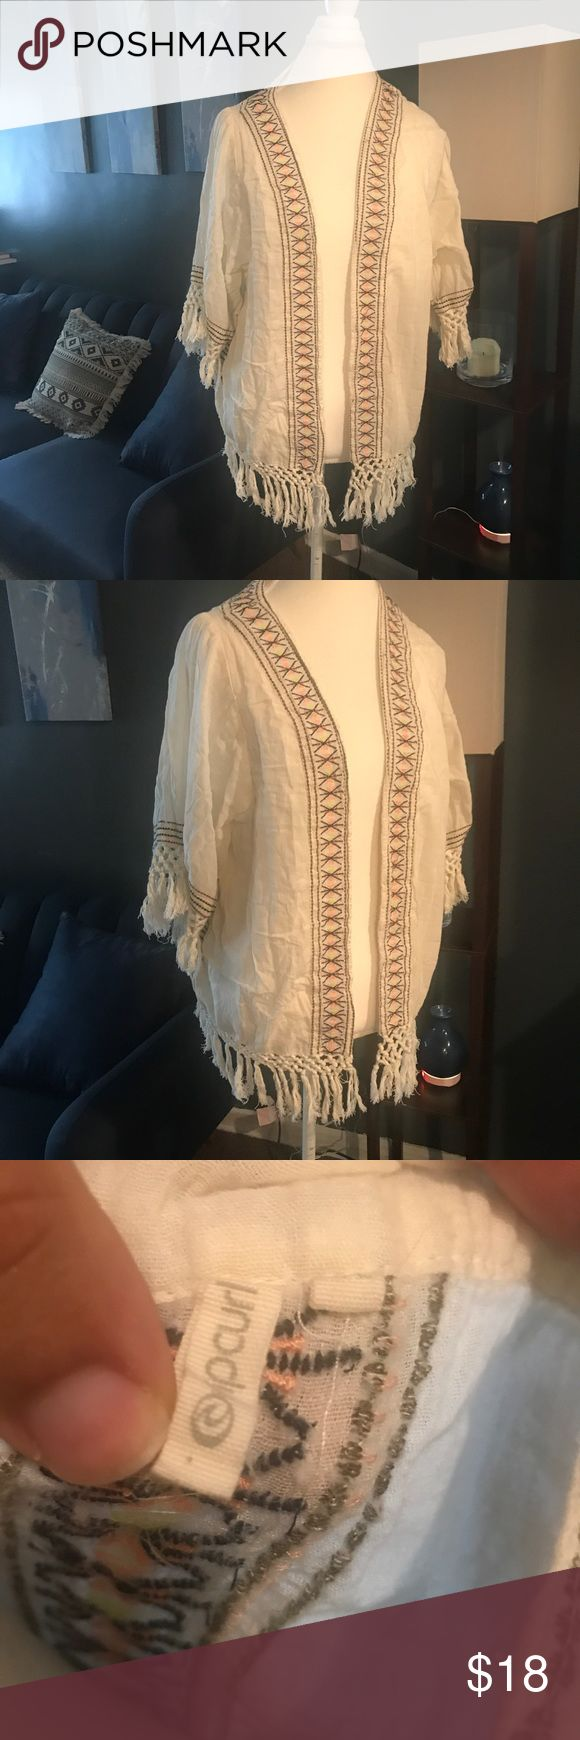 Ripcurl Tribal Cardigan Ripcurl Tribal Cardigan in great condition Rip Curl Tops